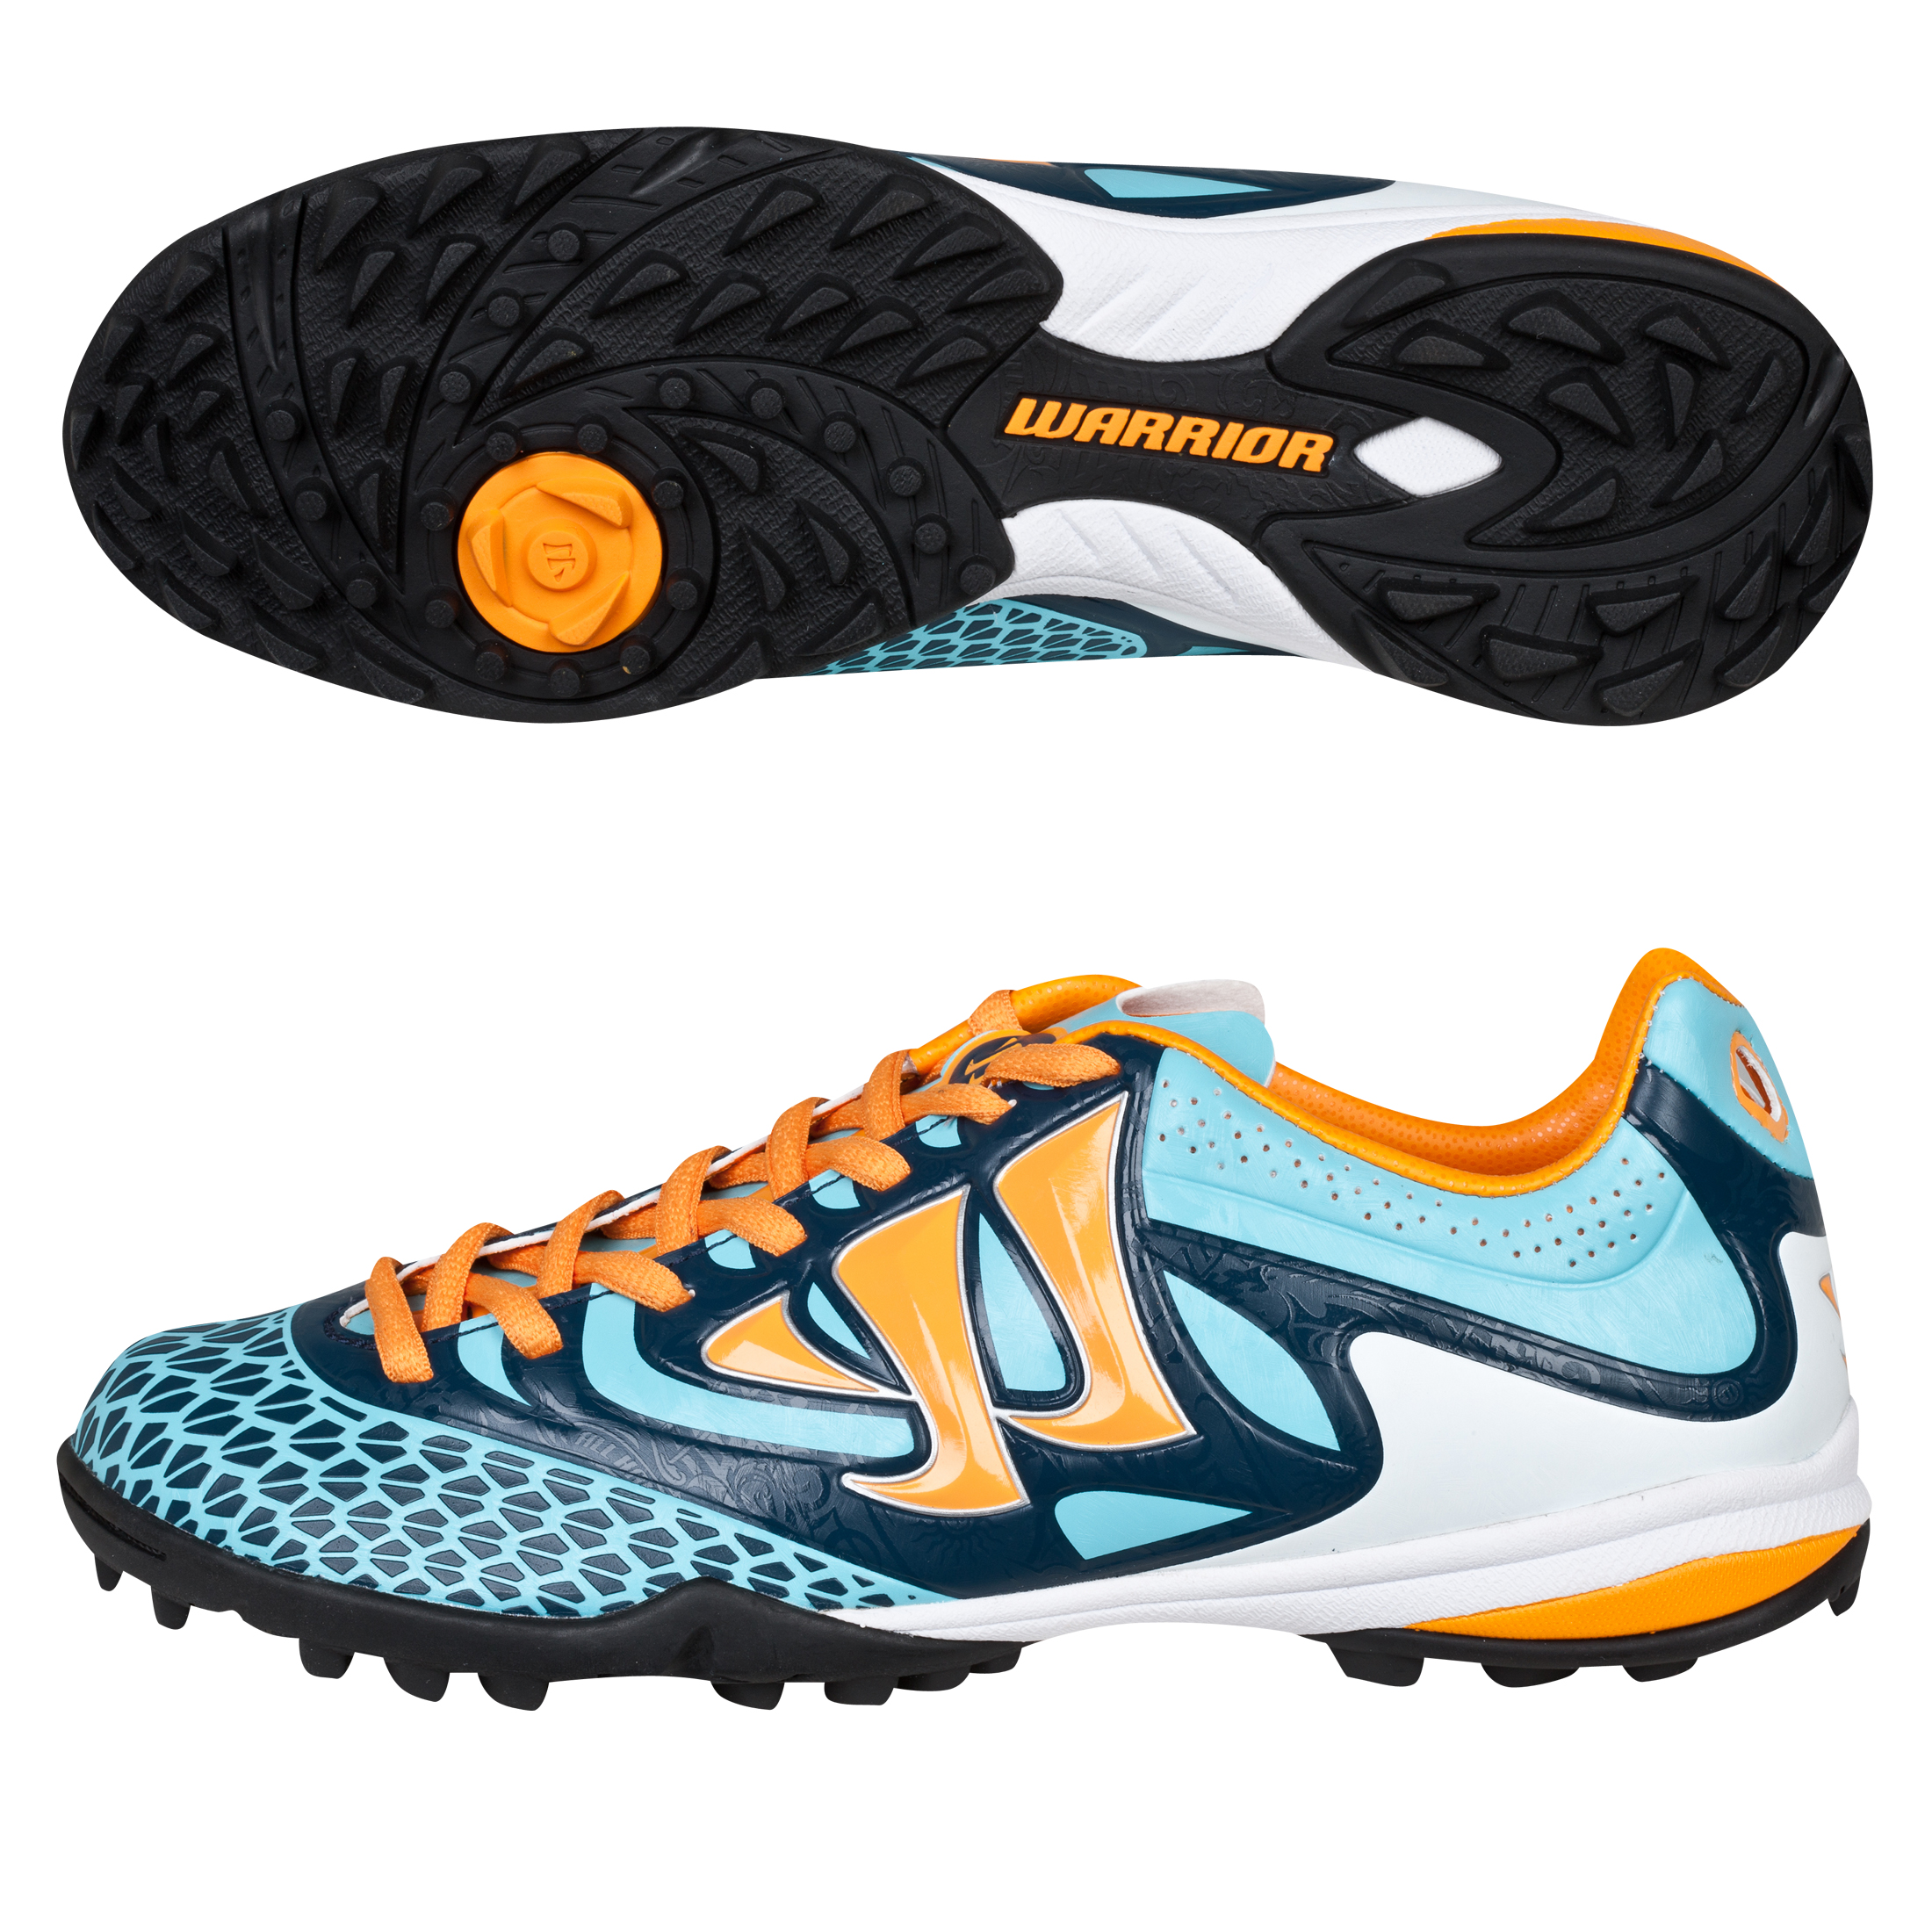 Warrior Sports Skreamer Combat Astroturf Trainers - Blue Radiance/Bright Marigold/Insignia Blue - Kids